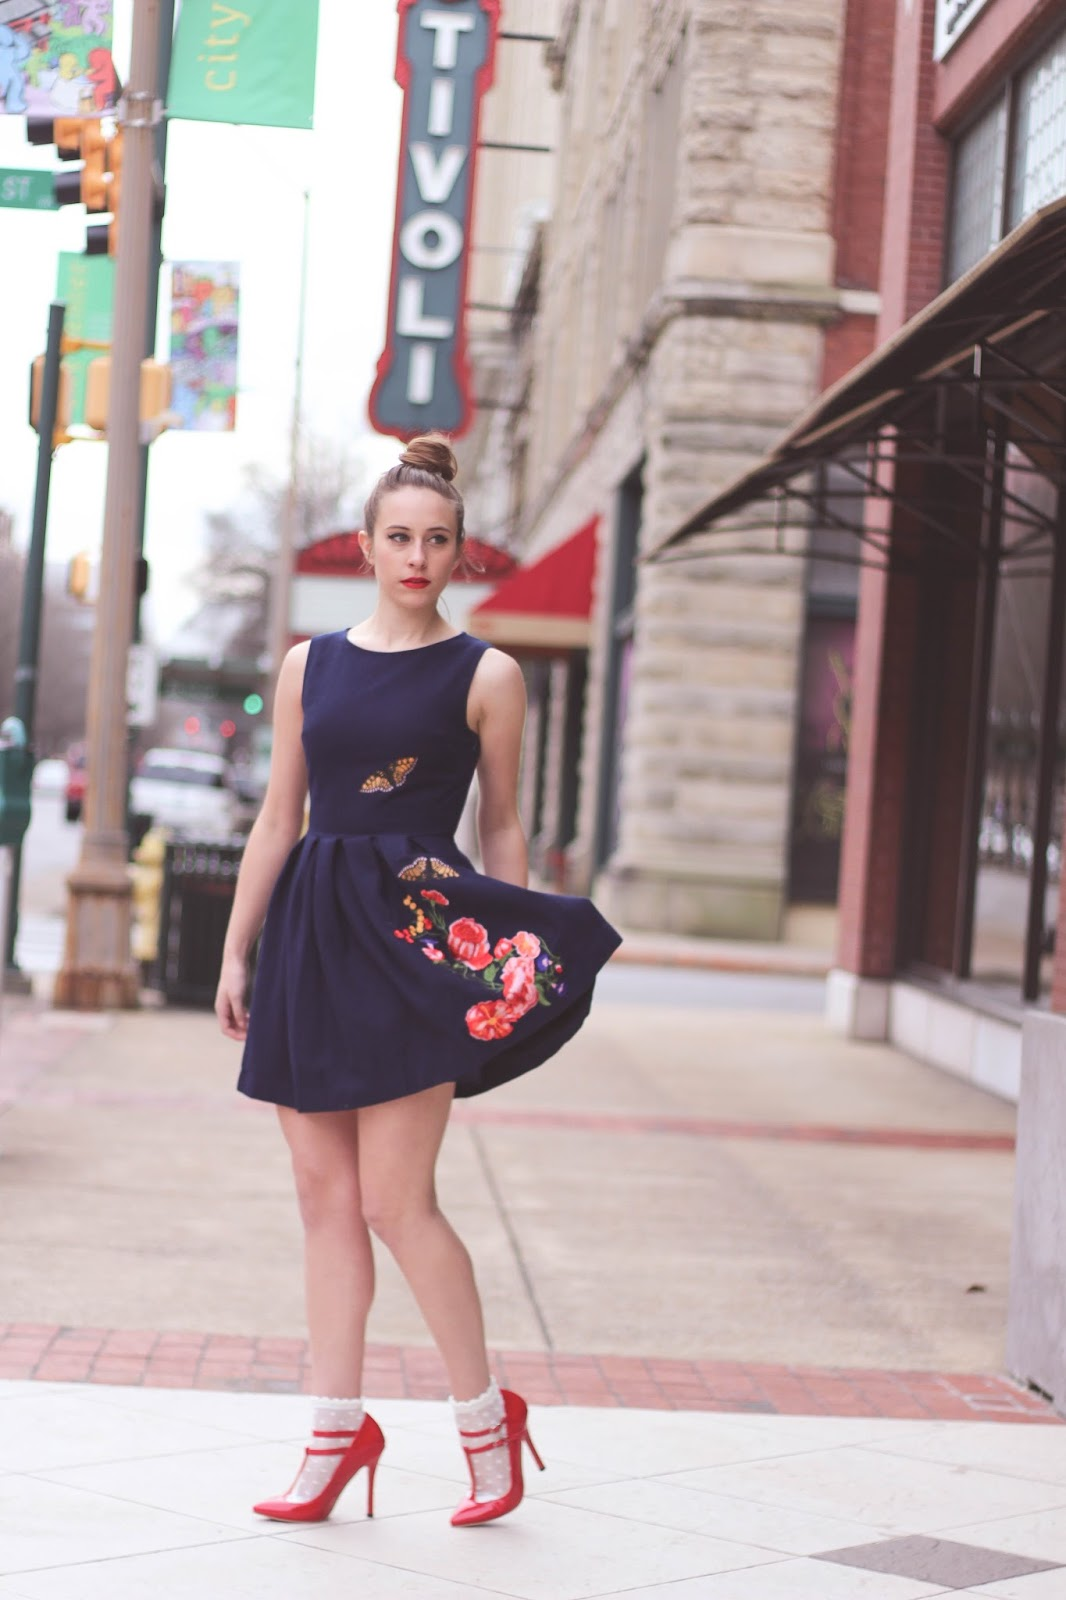 Girly, Whimsical, Nishe, Embroidered Dress, Skater Dress, Fashion Blogger, Fashion, Cute, Feminine, Red Heel, Socks and Heels